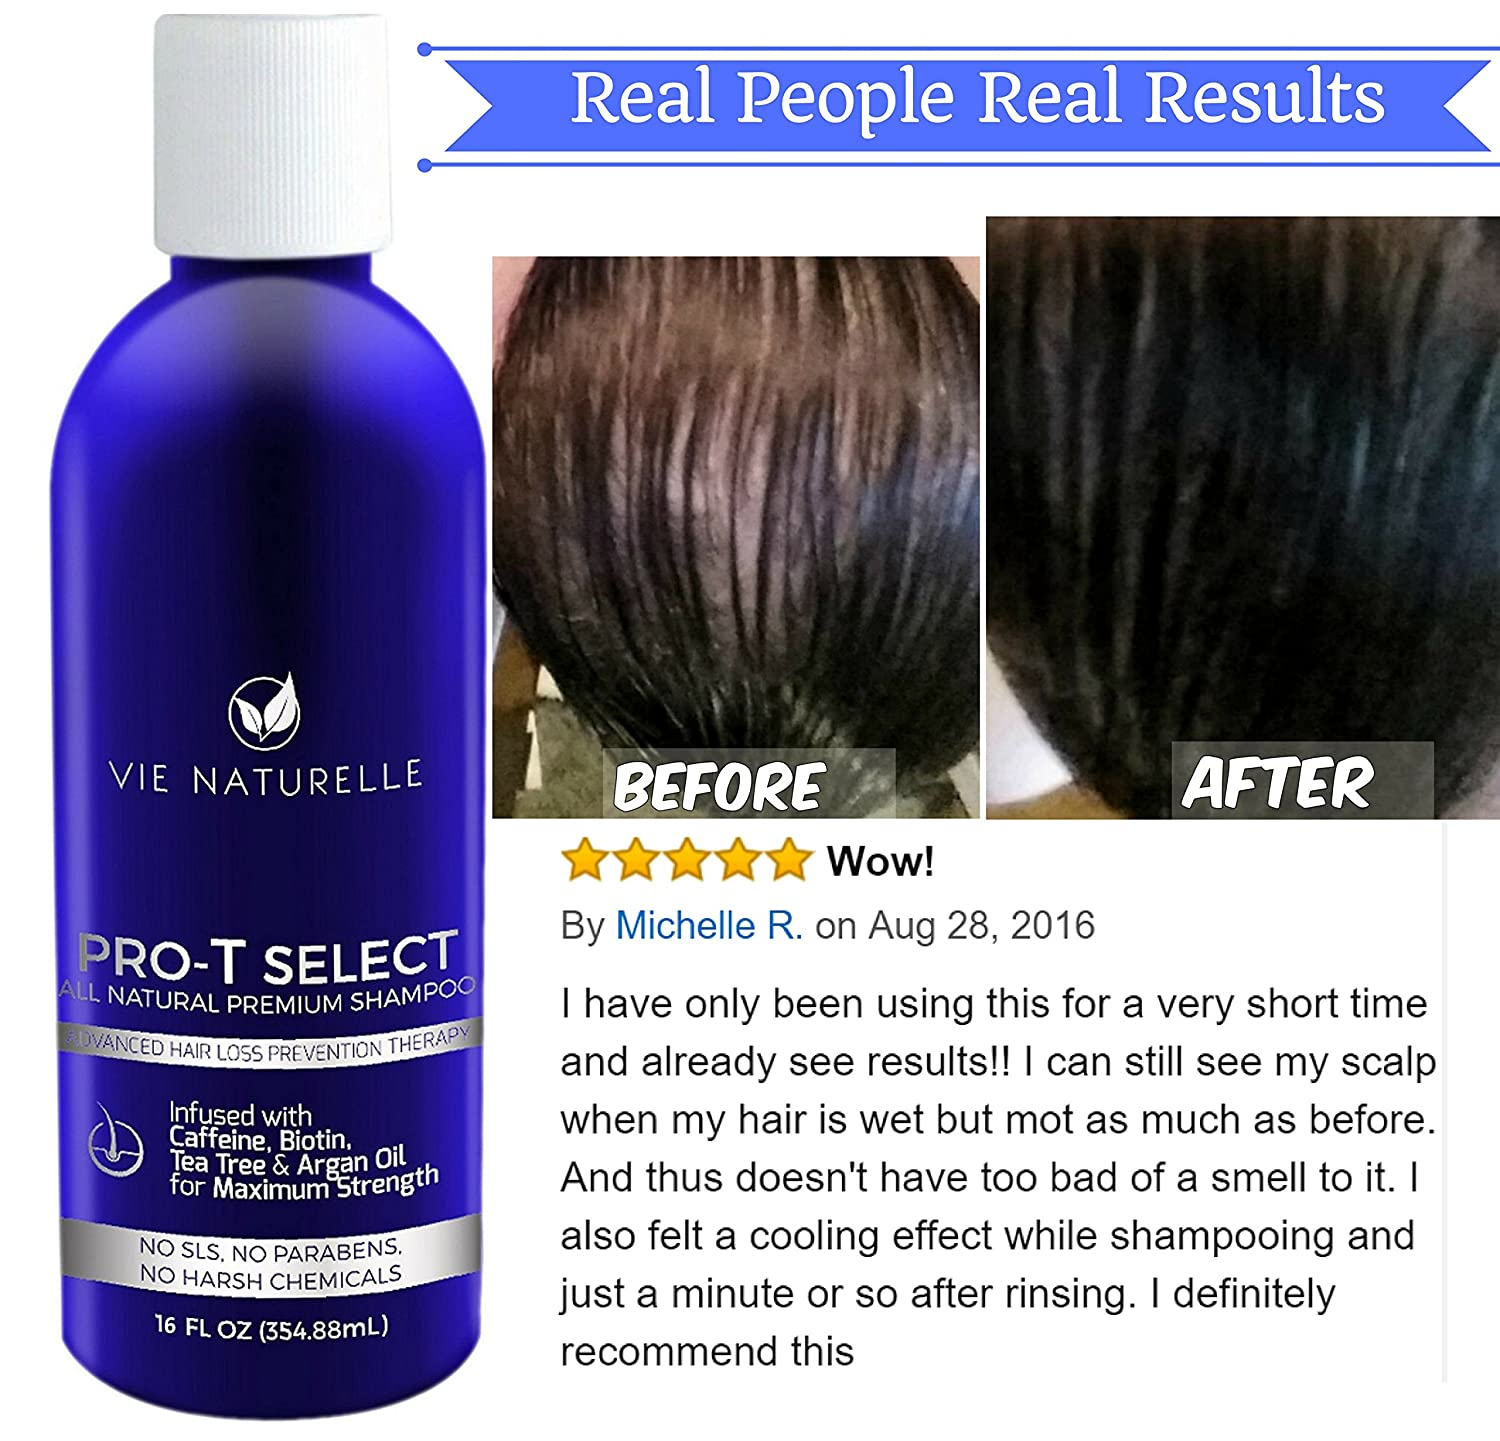 Amazoncom Vie Naturelle Hair Loss Treatment Shampoo For Fast - How much biotin to take for hair growth